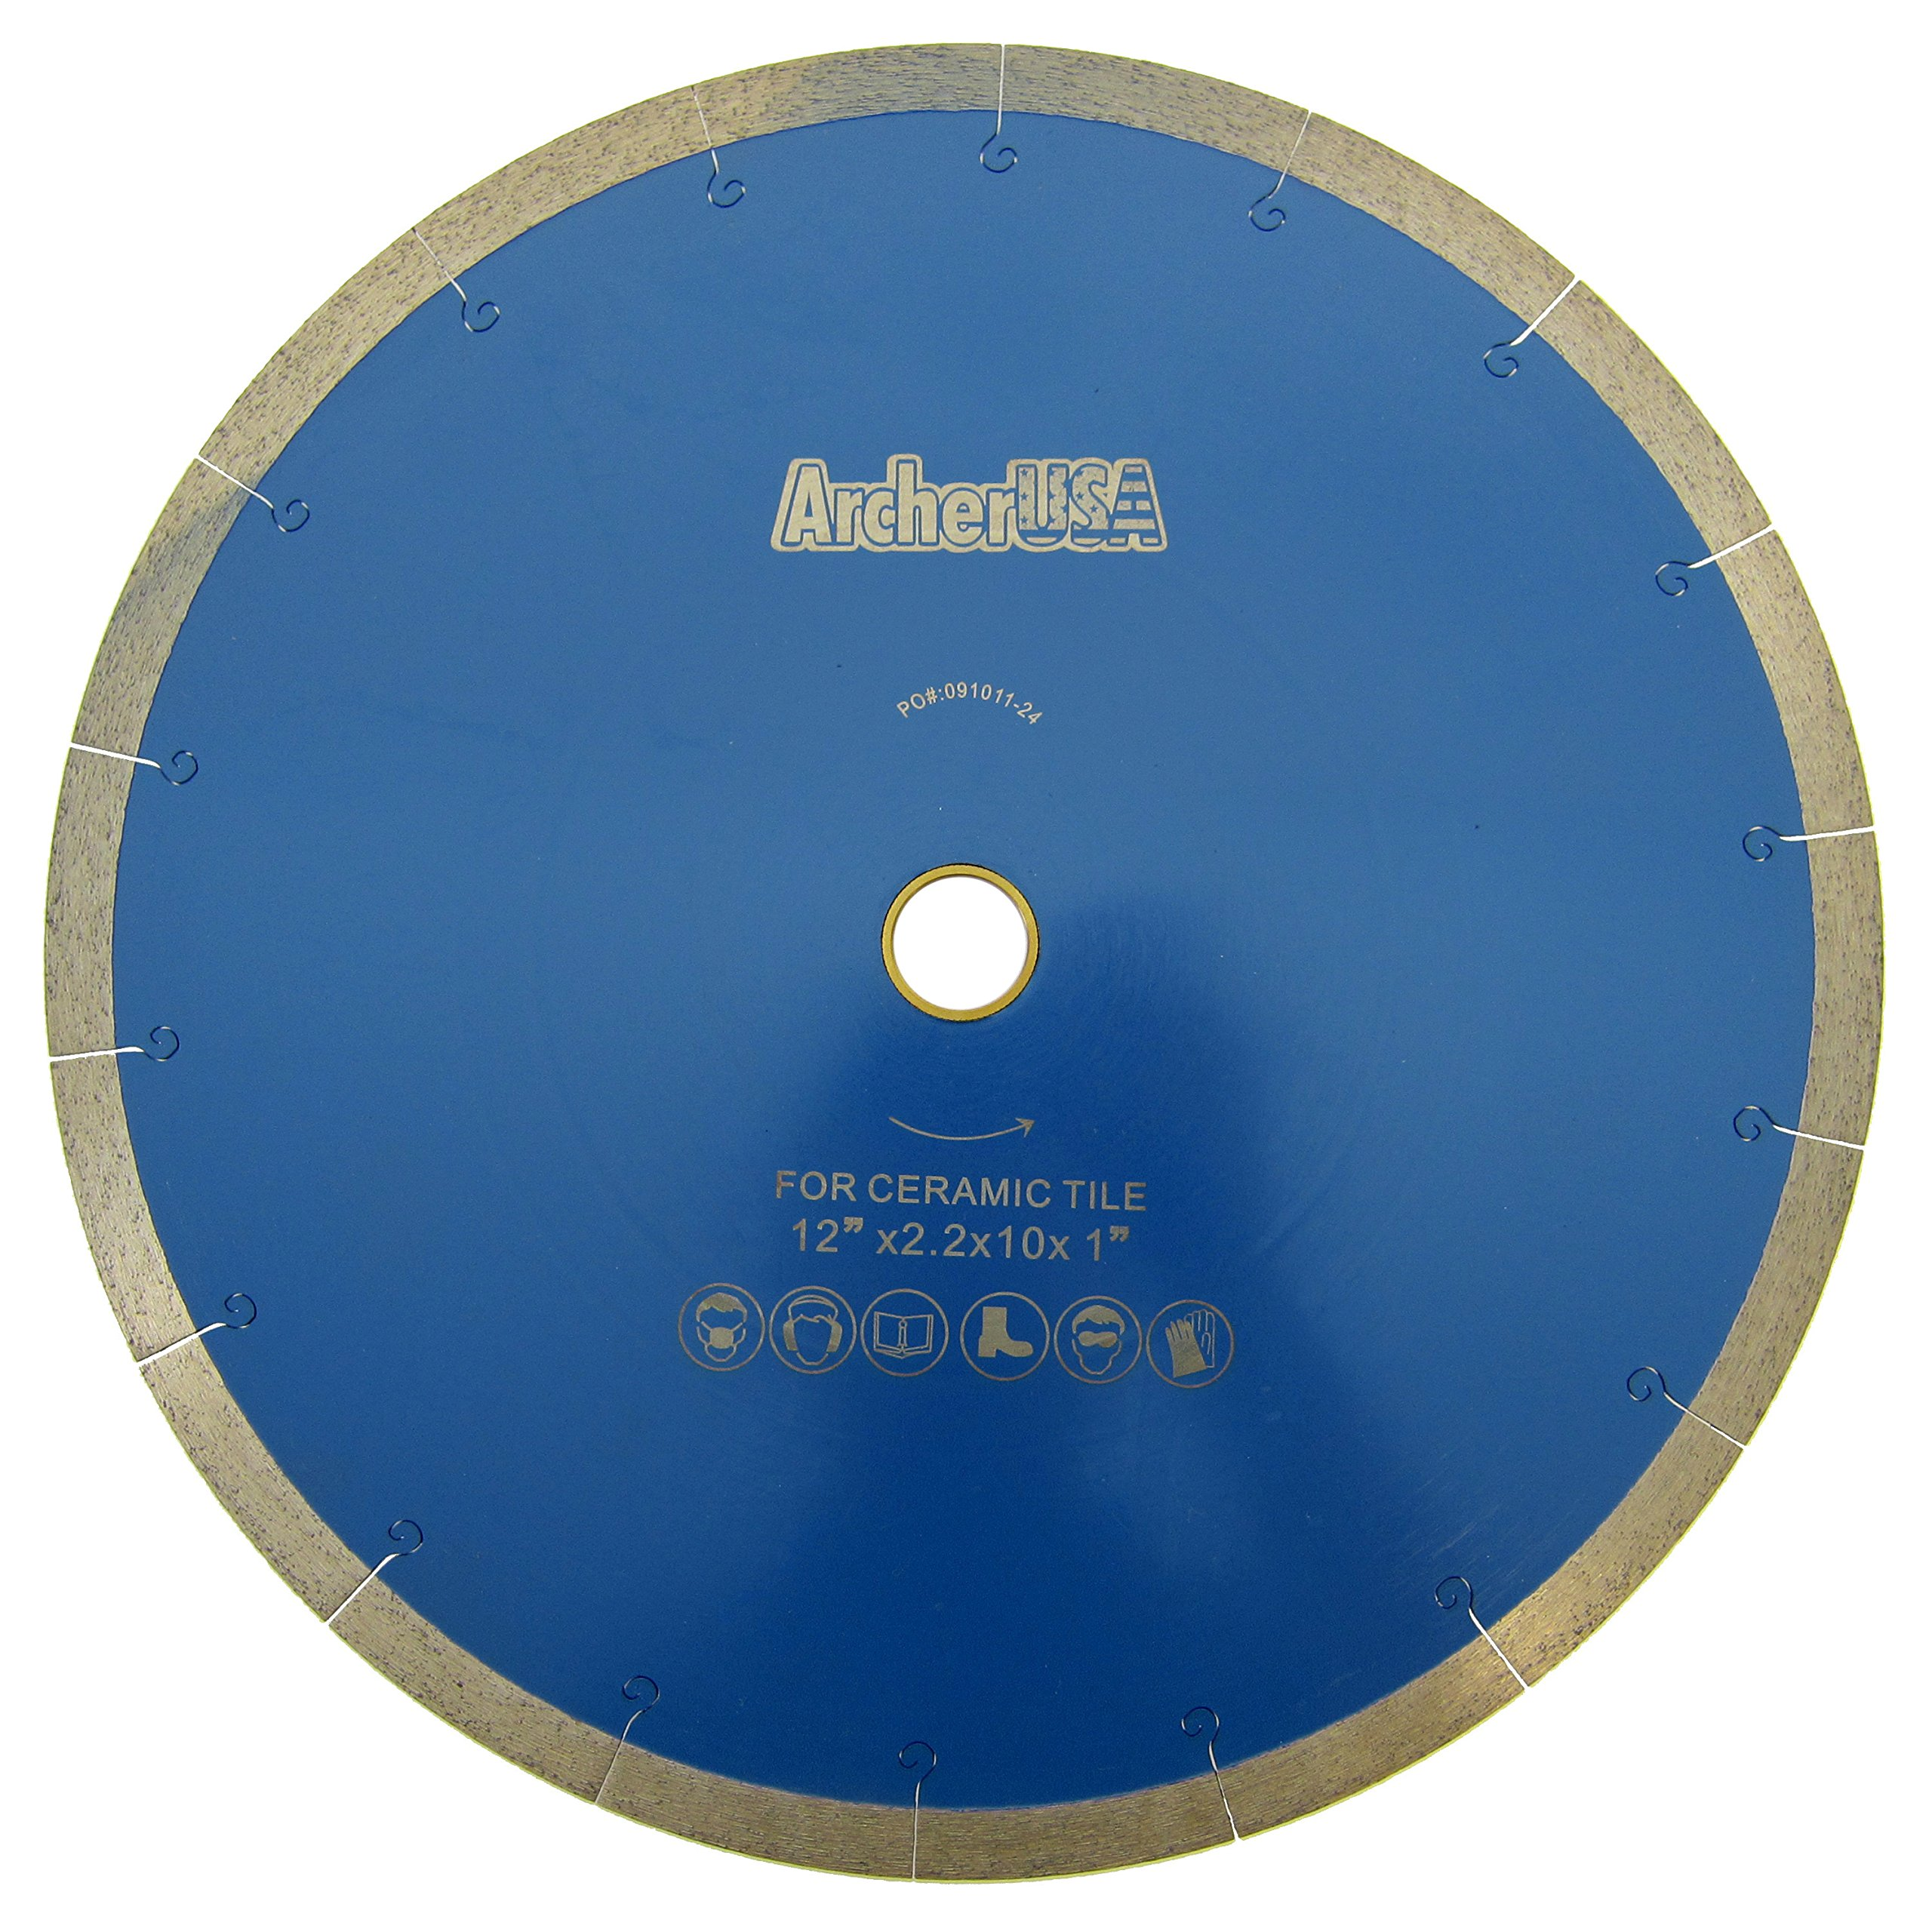 Tile Cutting Continuous Rim Diamond Blade with J-Slot 12 in. by Archer USA by Archer USA / Dexpan USA